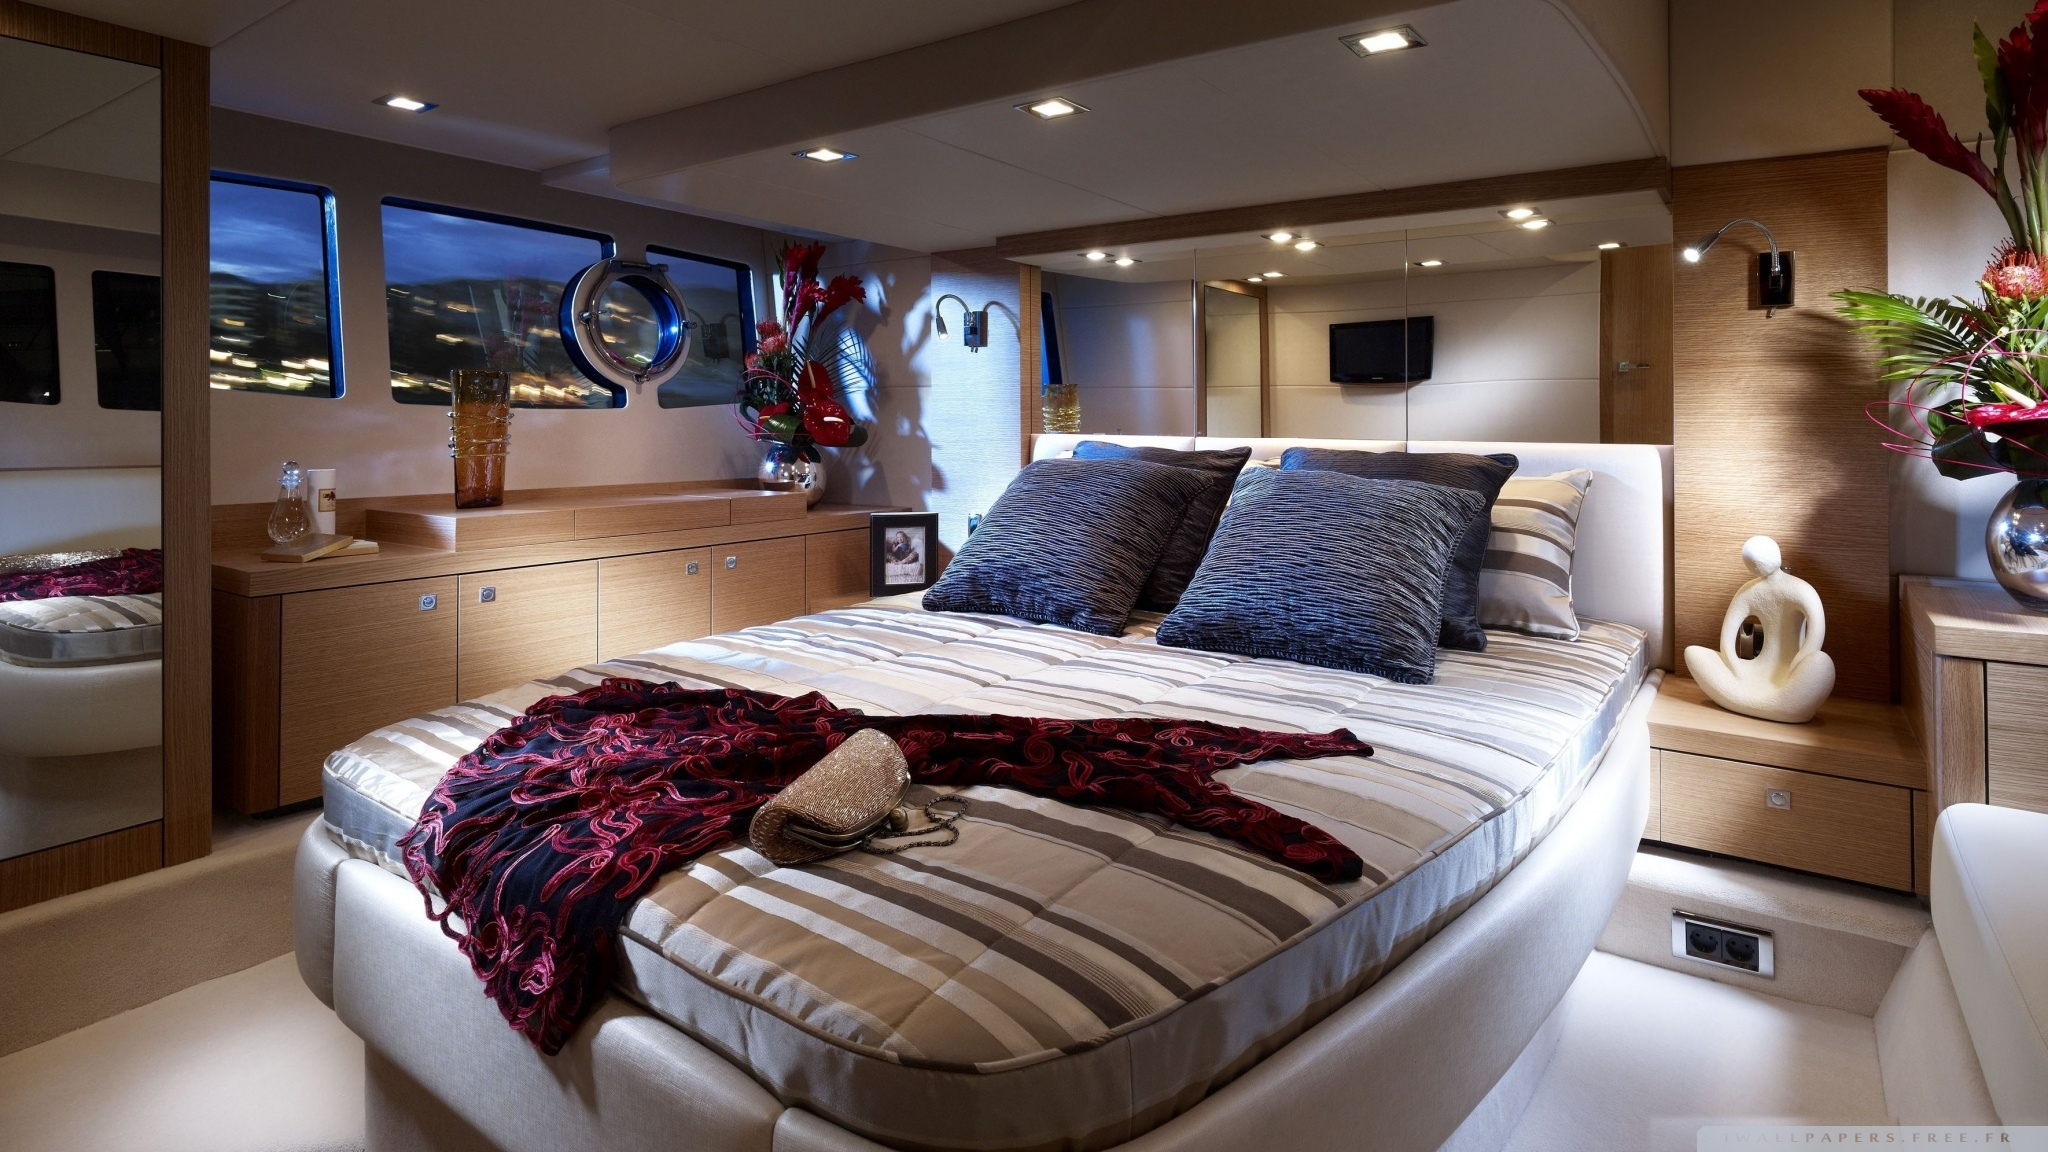 yacht_bedroom-wallpaper-2048x1152.jpg